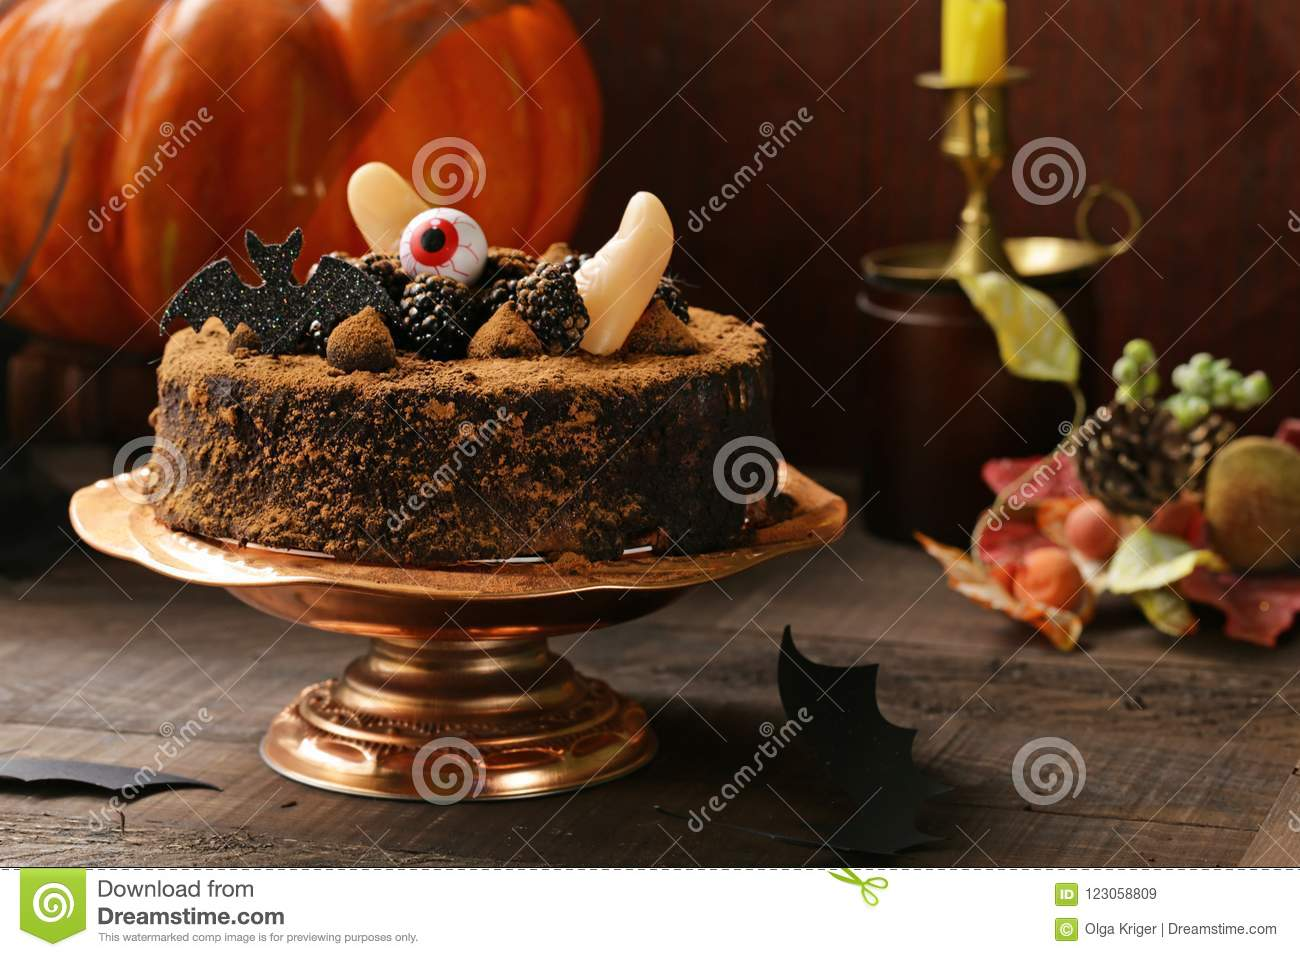 Cake with halloween decor